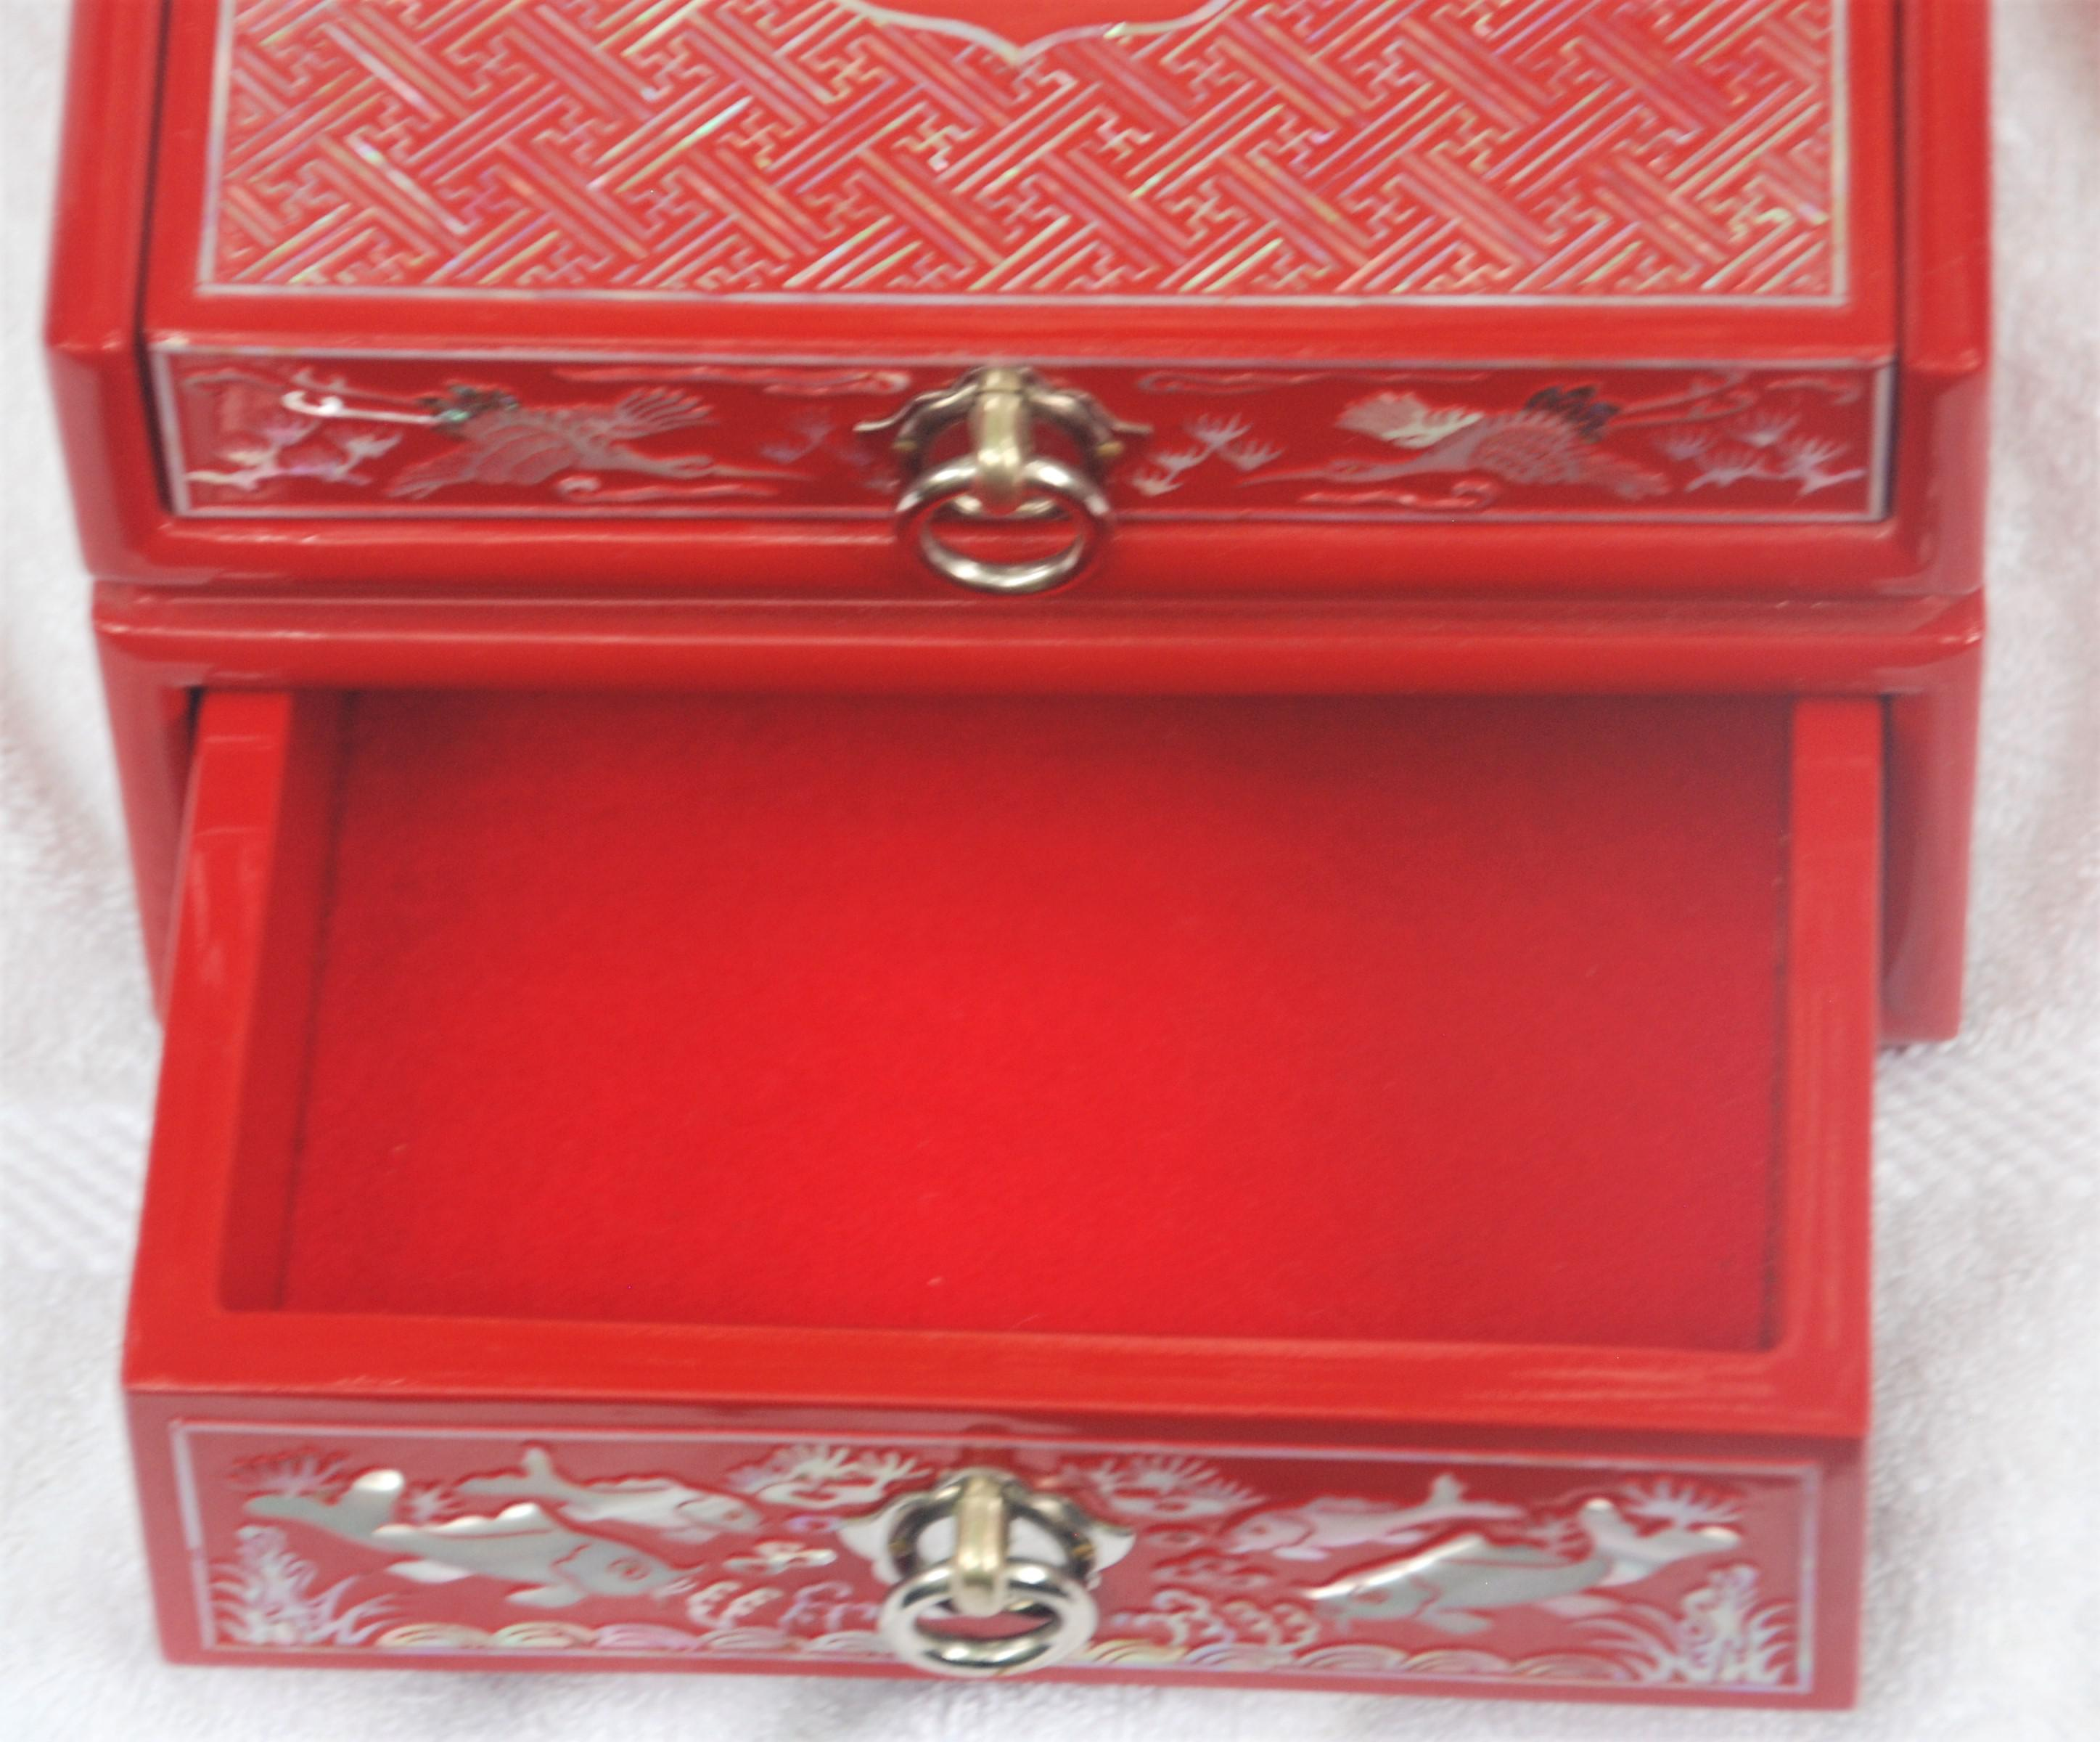 Red Lacquered Asian Jewelry Box Chairish